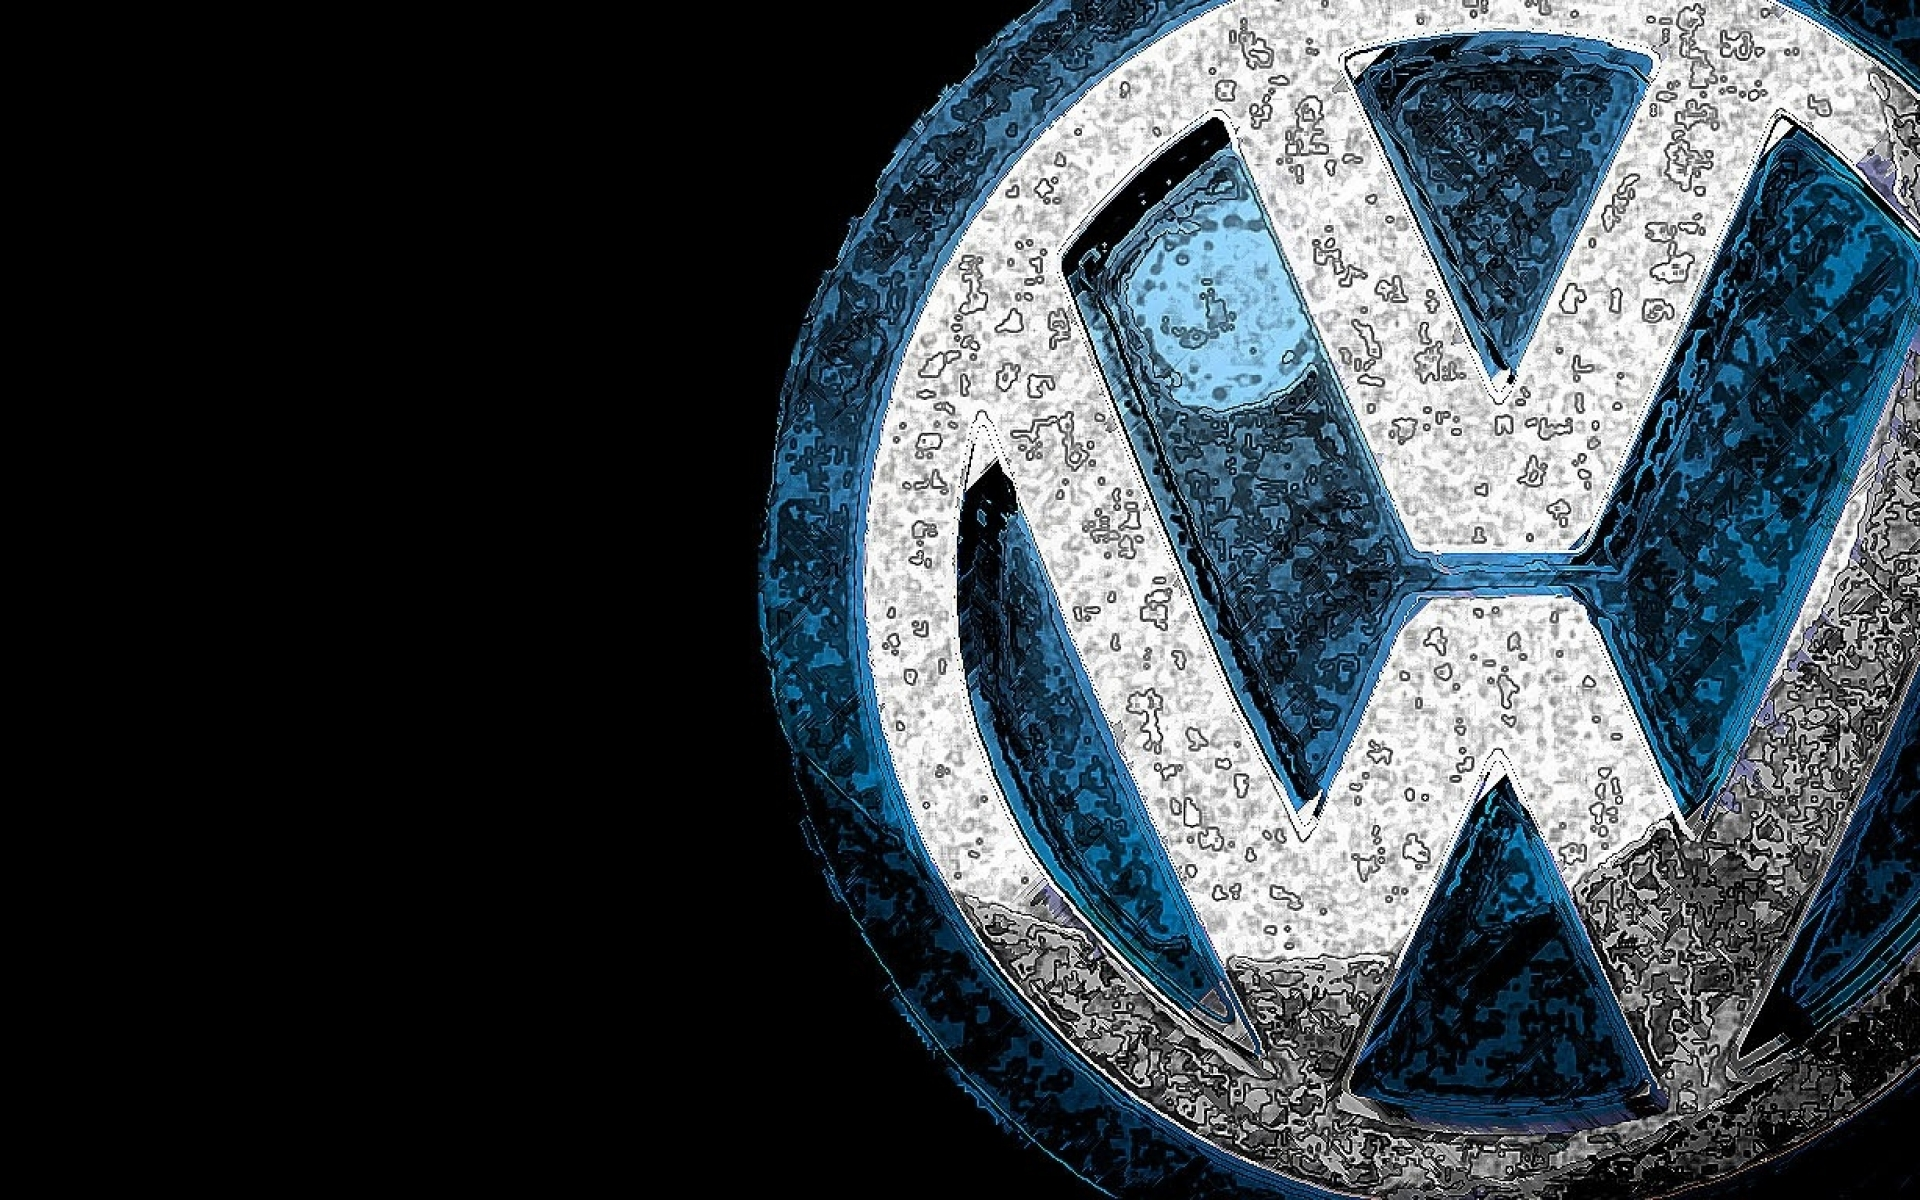 Volkswagen Pictures and Wallpapers - WallpaperSafari